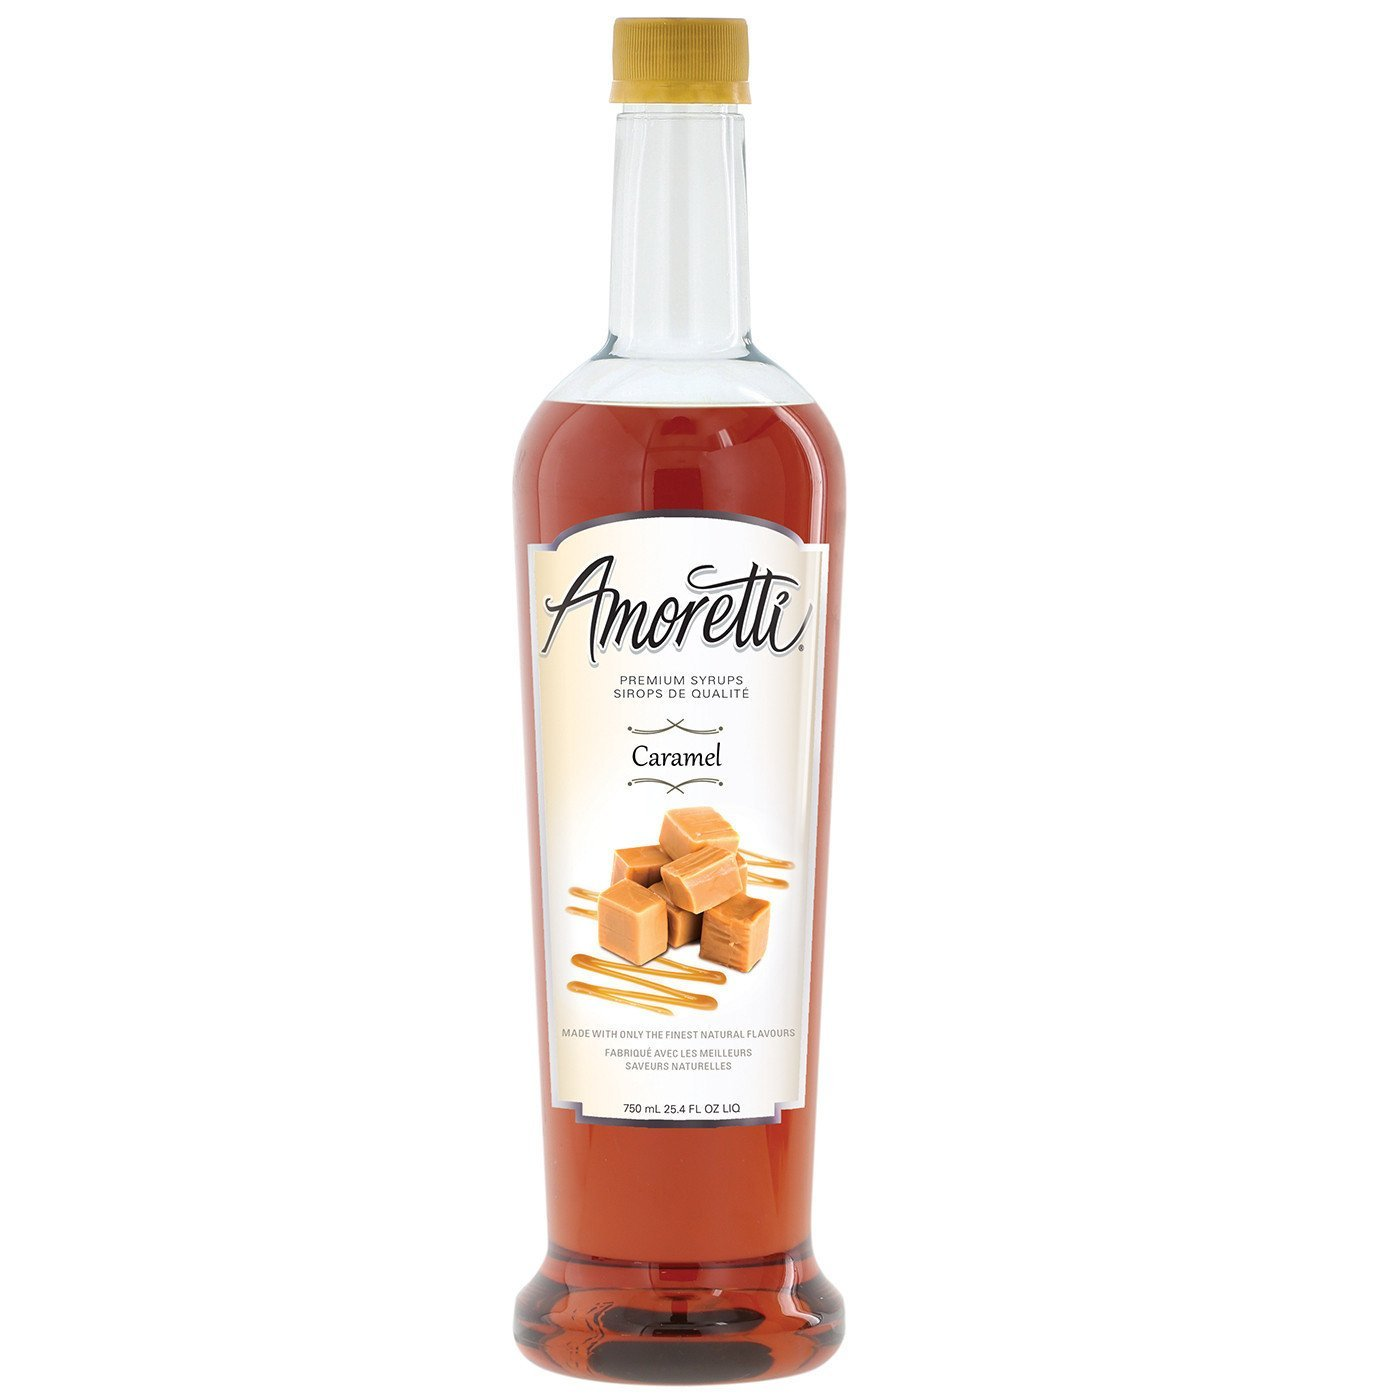 Amoretti Premium Syrup, Caramel, 25.4 Ounce by Amoretti (Image #1)